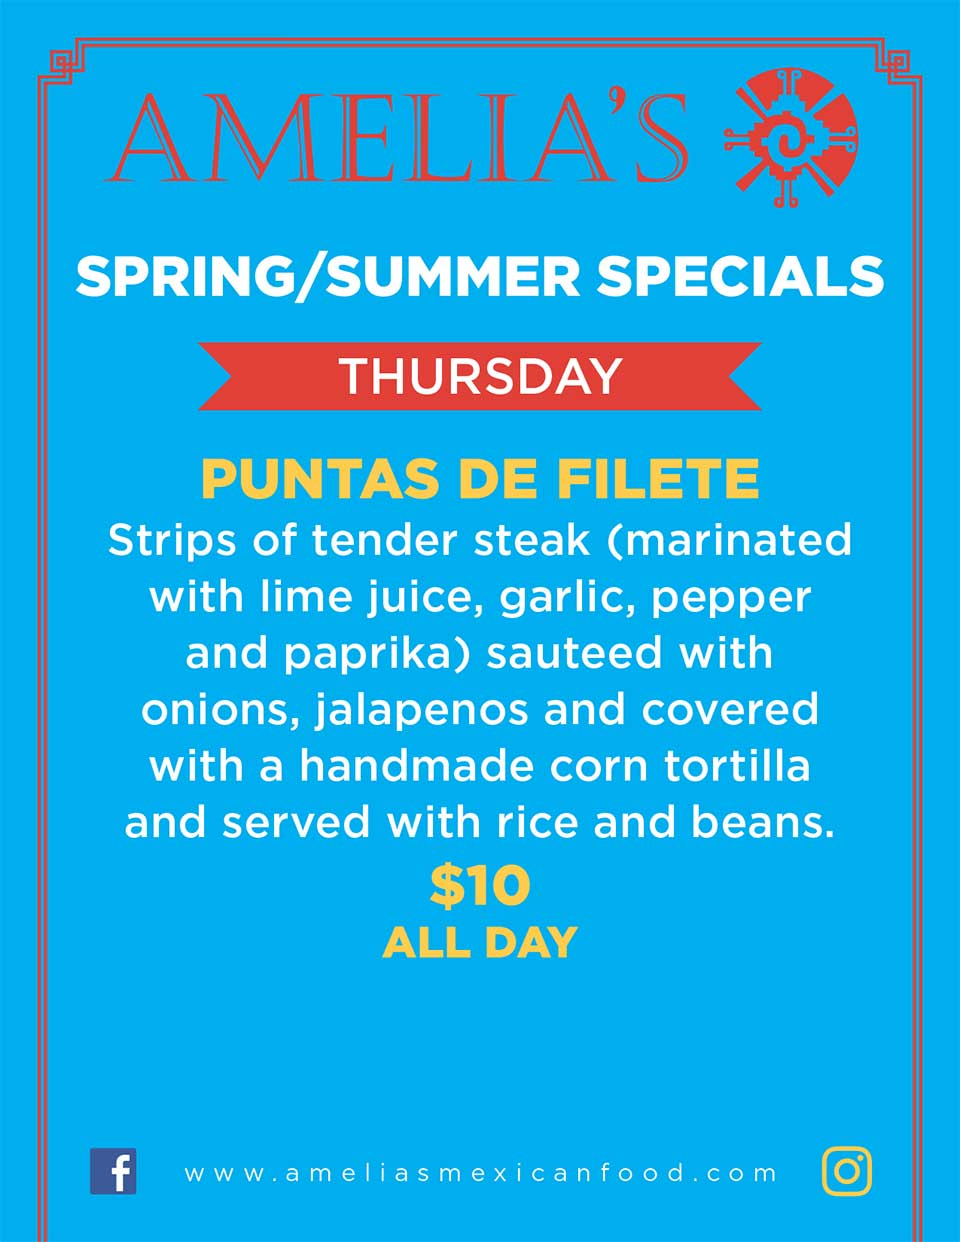 image of Amelia's spring & summer specials for Thursday